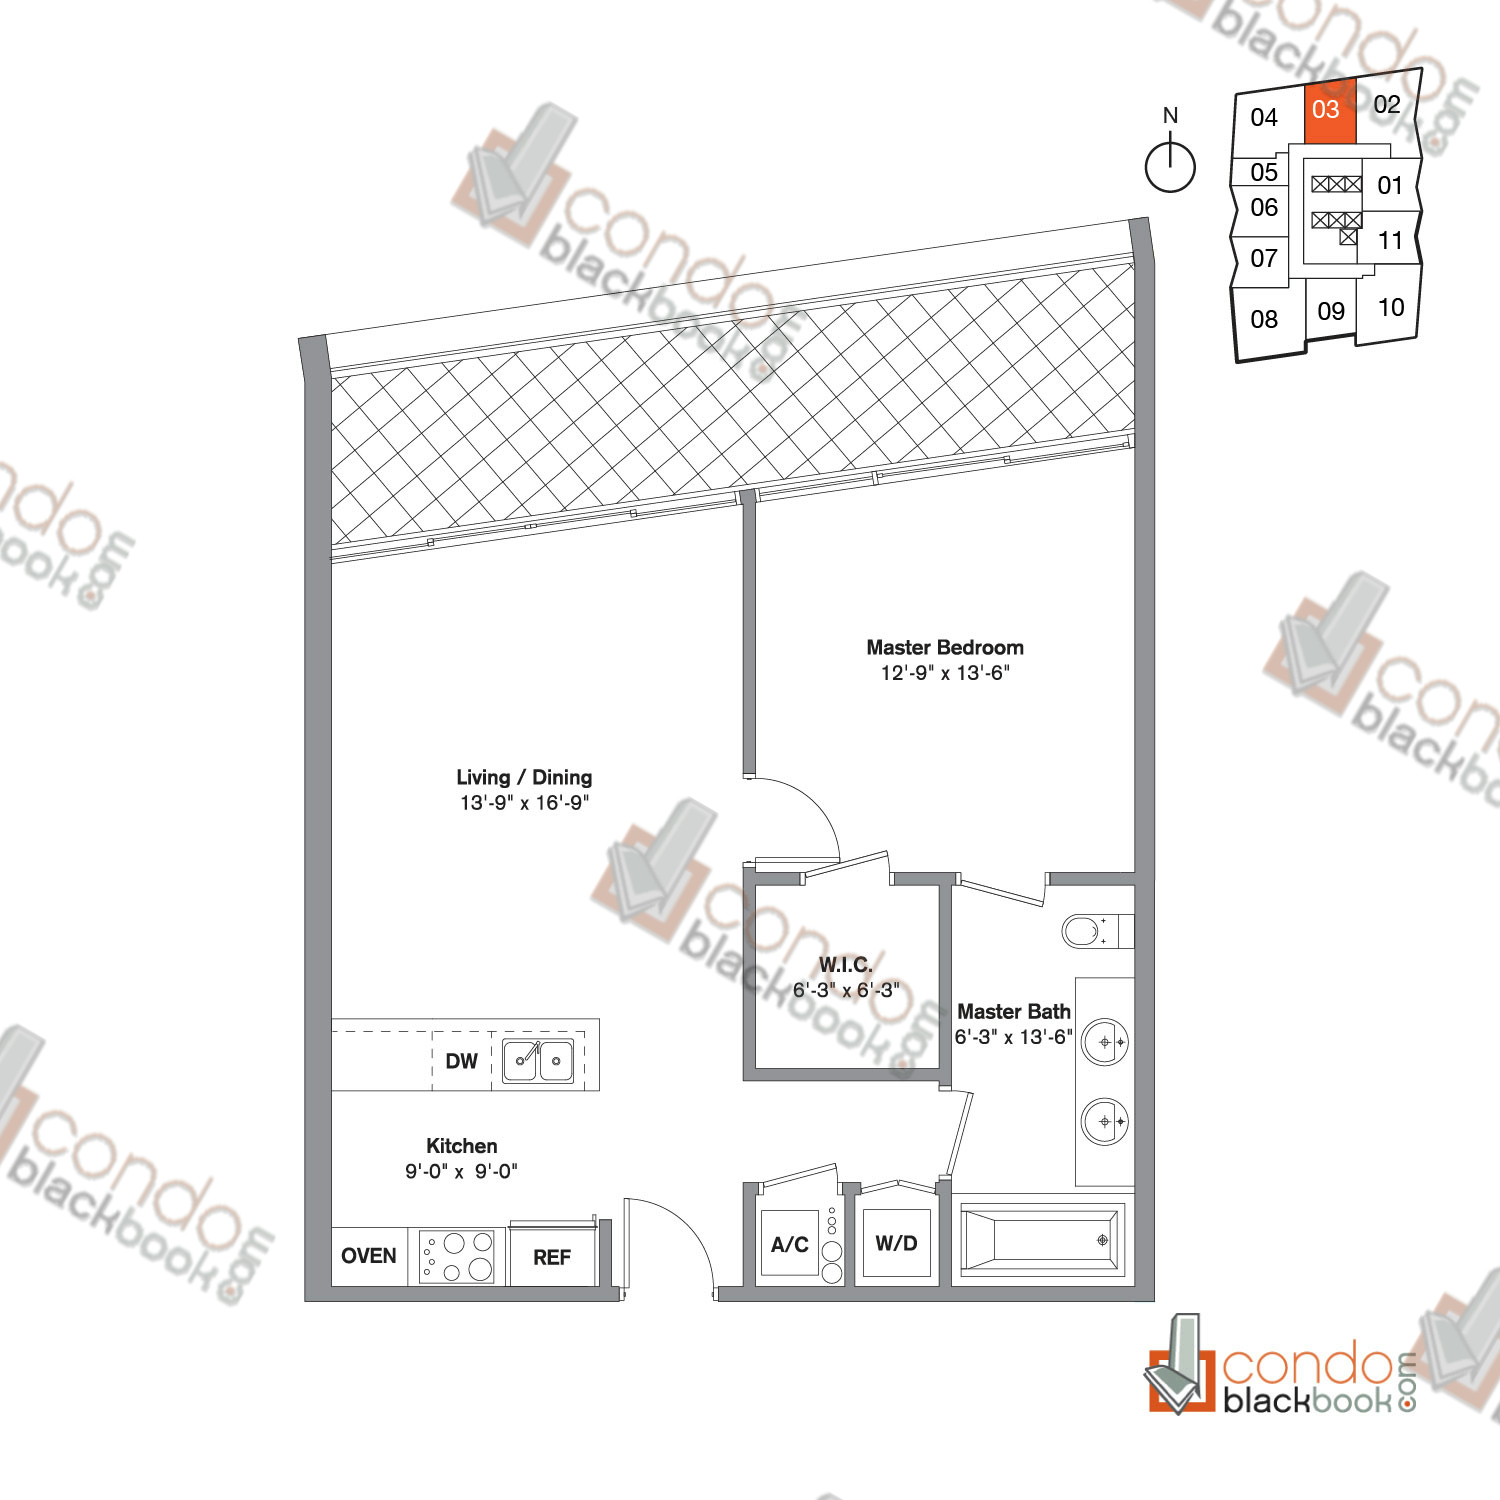 Floor plan for Icon Brickell Viceroy Brickell Miami, model Unit J, line 03, 1/1 bedrooms, 790 sq ft